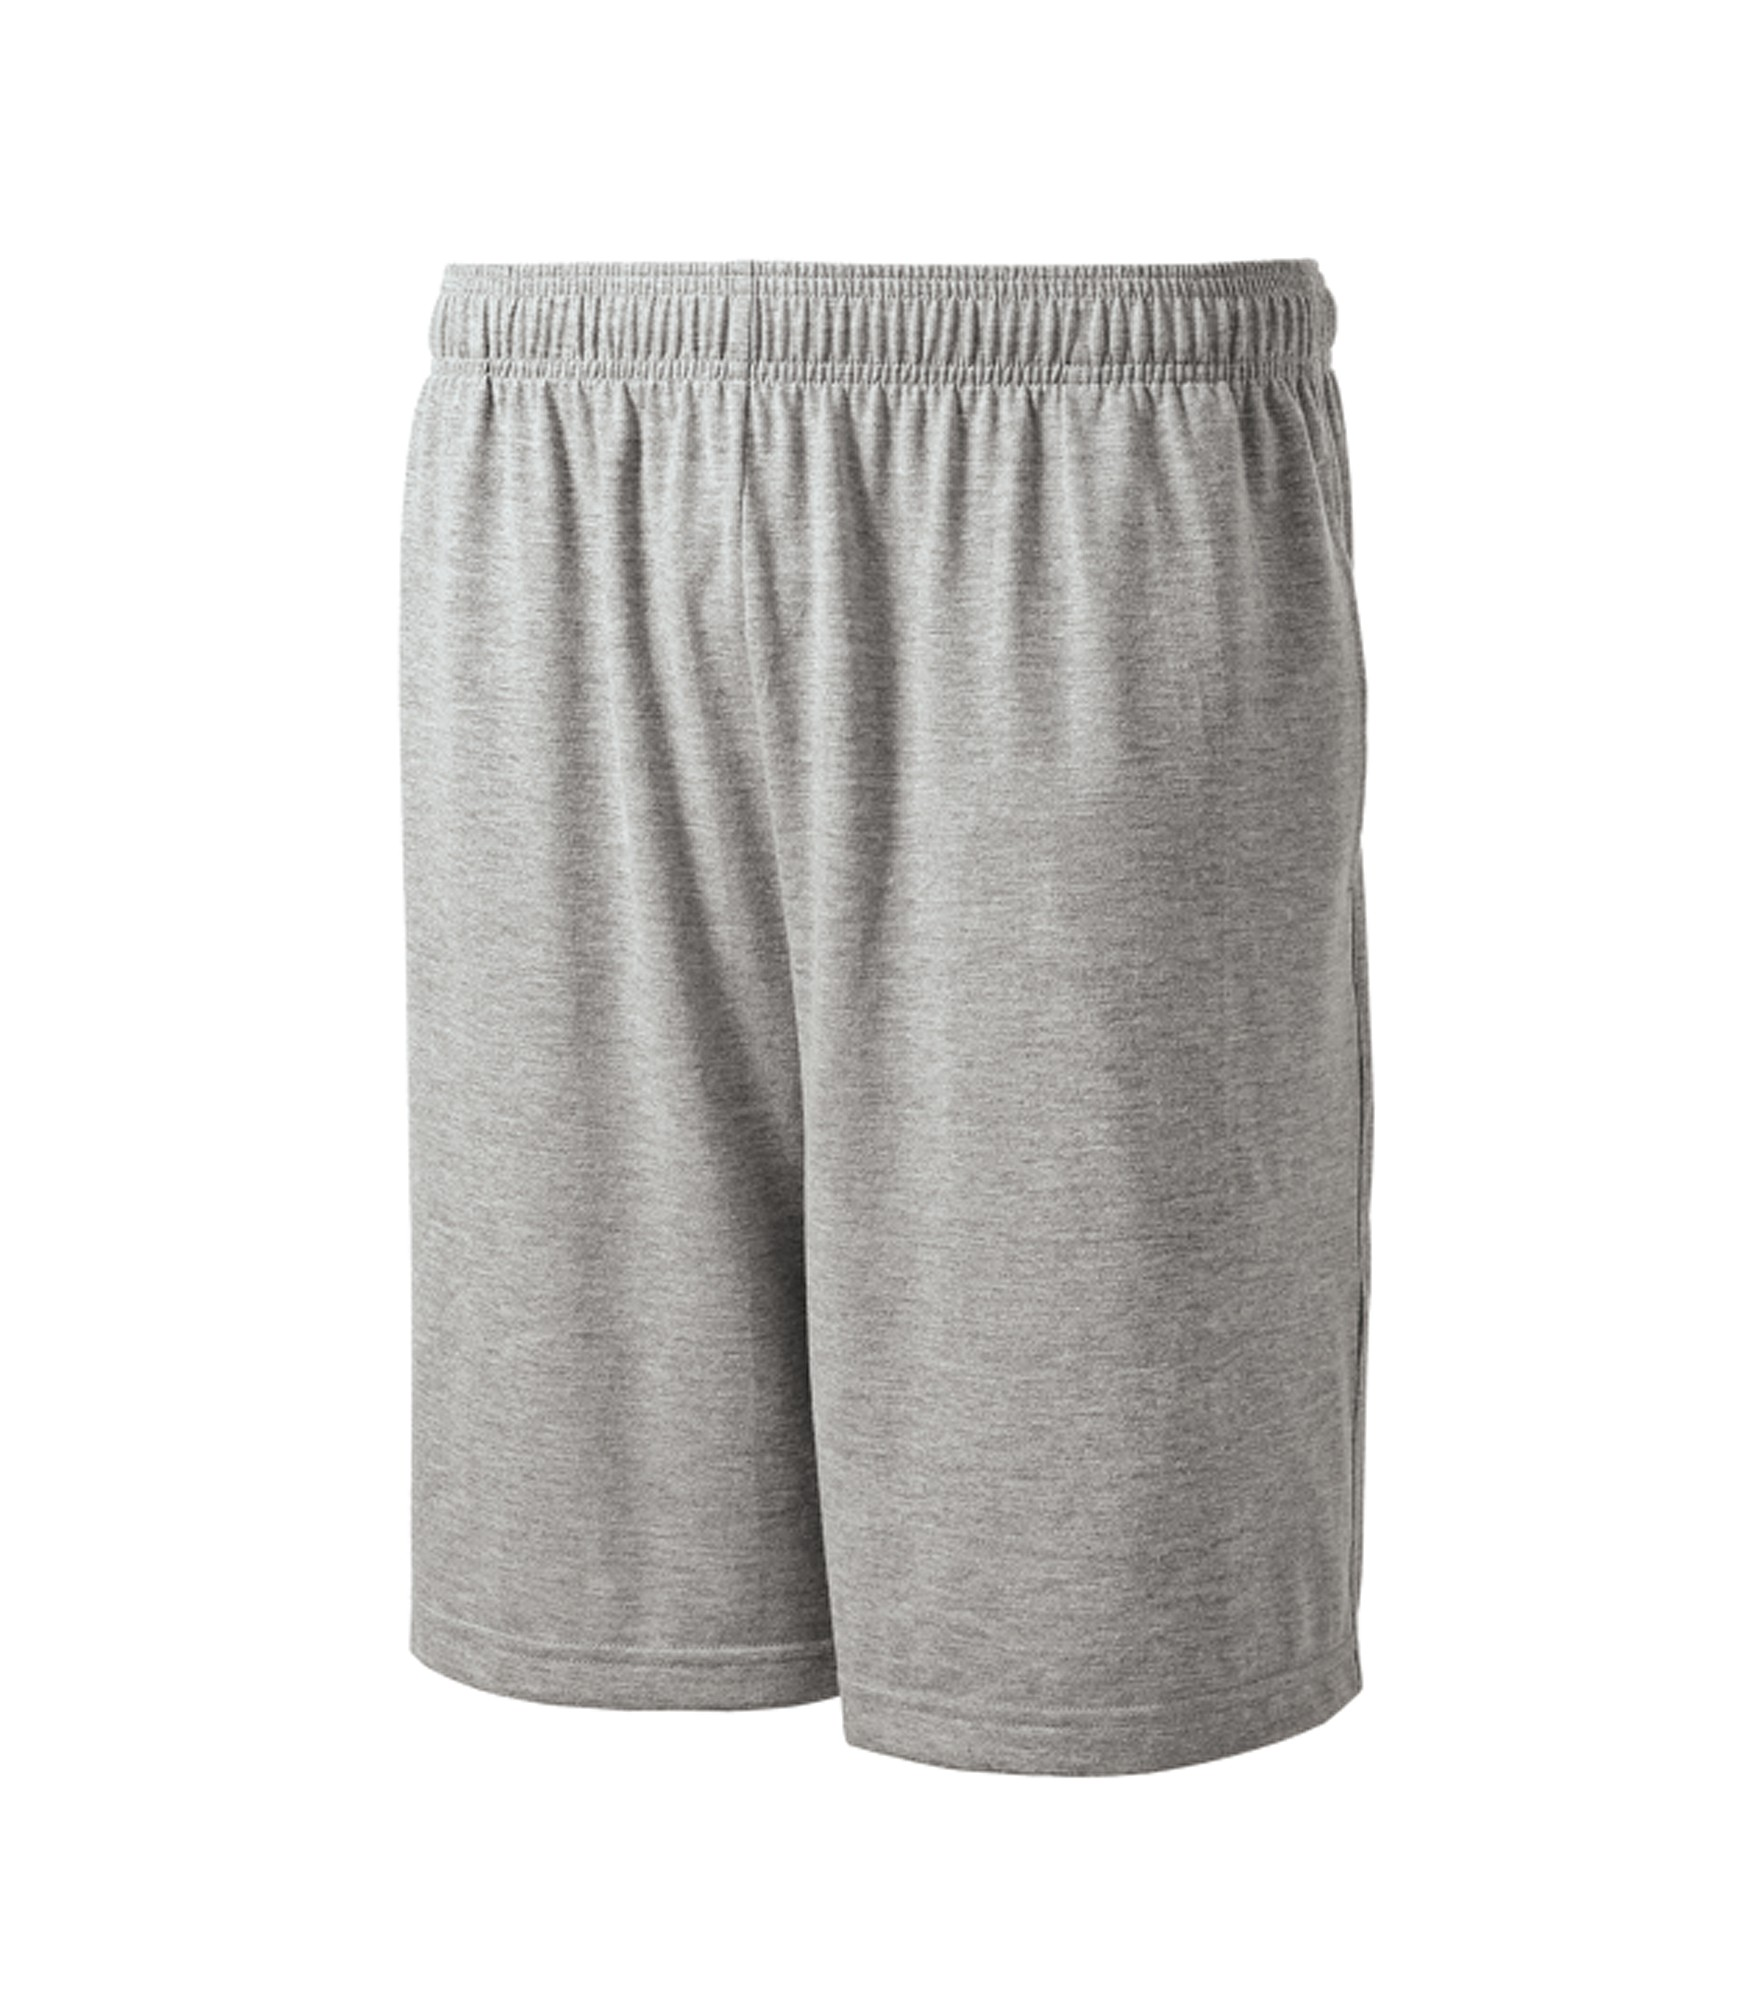 Amp Us Employee Sport Tek Jersey Knit Shorts With Pockets As low as $19.00 regular price $30.00. amp us employee sport tek jersey knit shorts with pockets